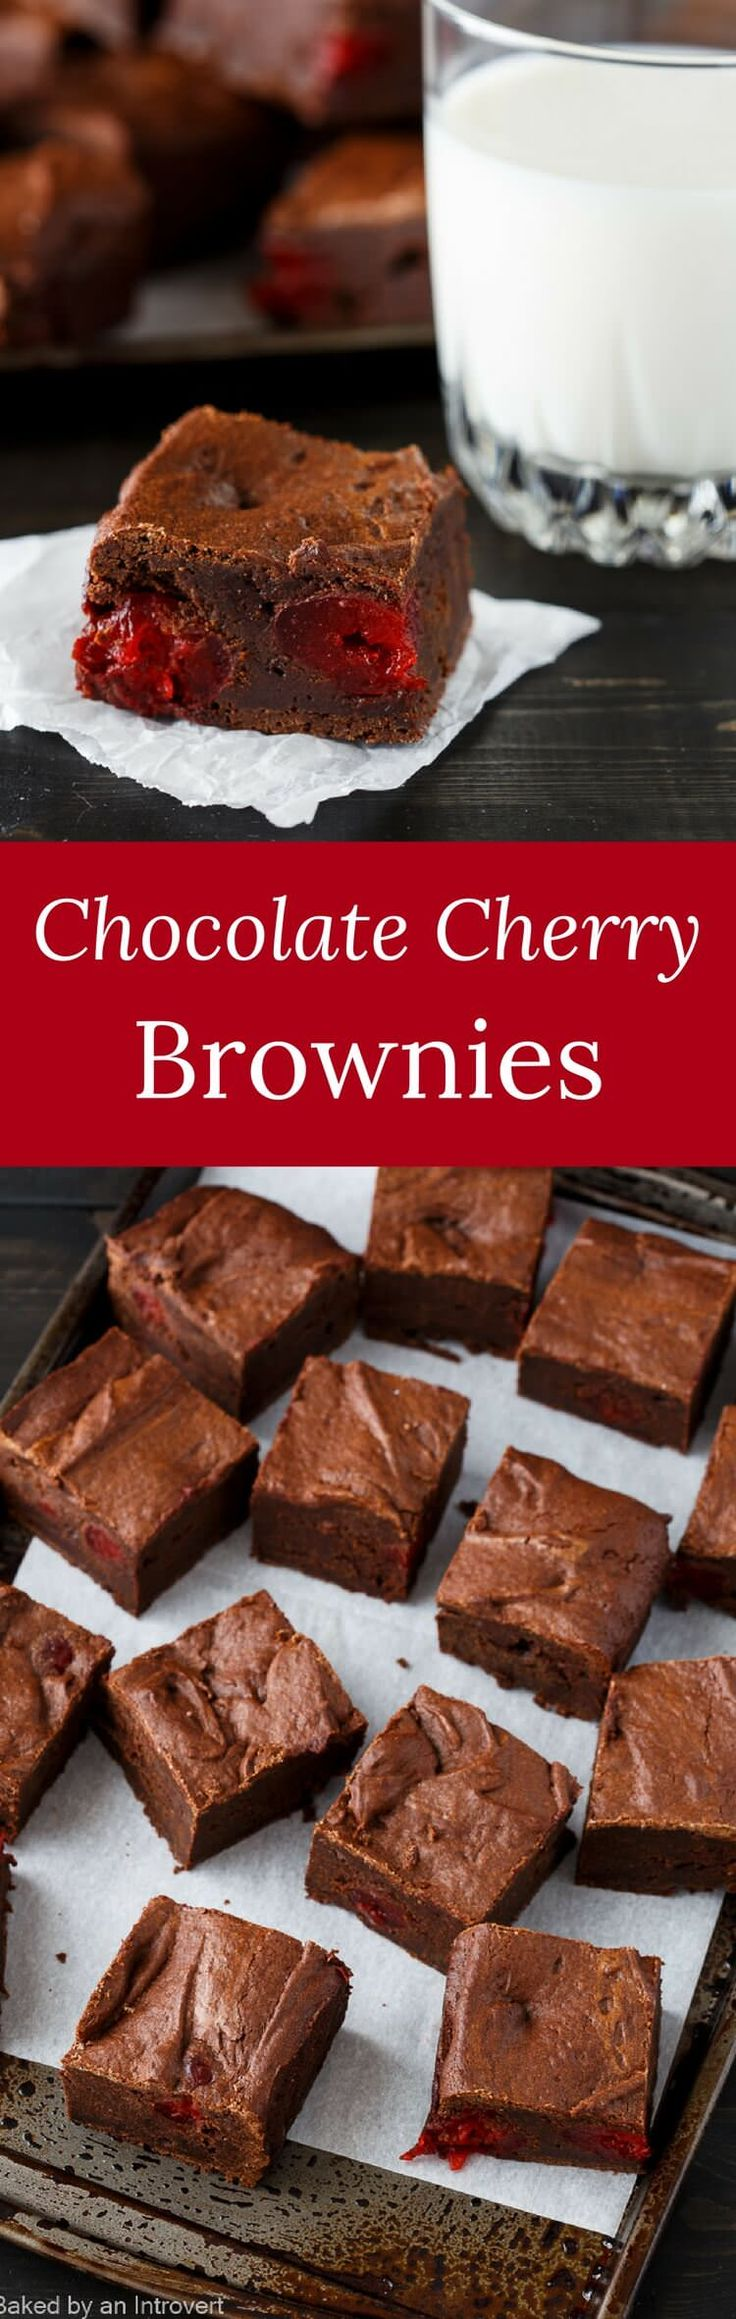 Top 25+ best Chocolate cherry ideas on Pinterest | Chocolate ...